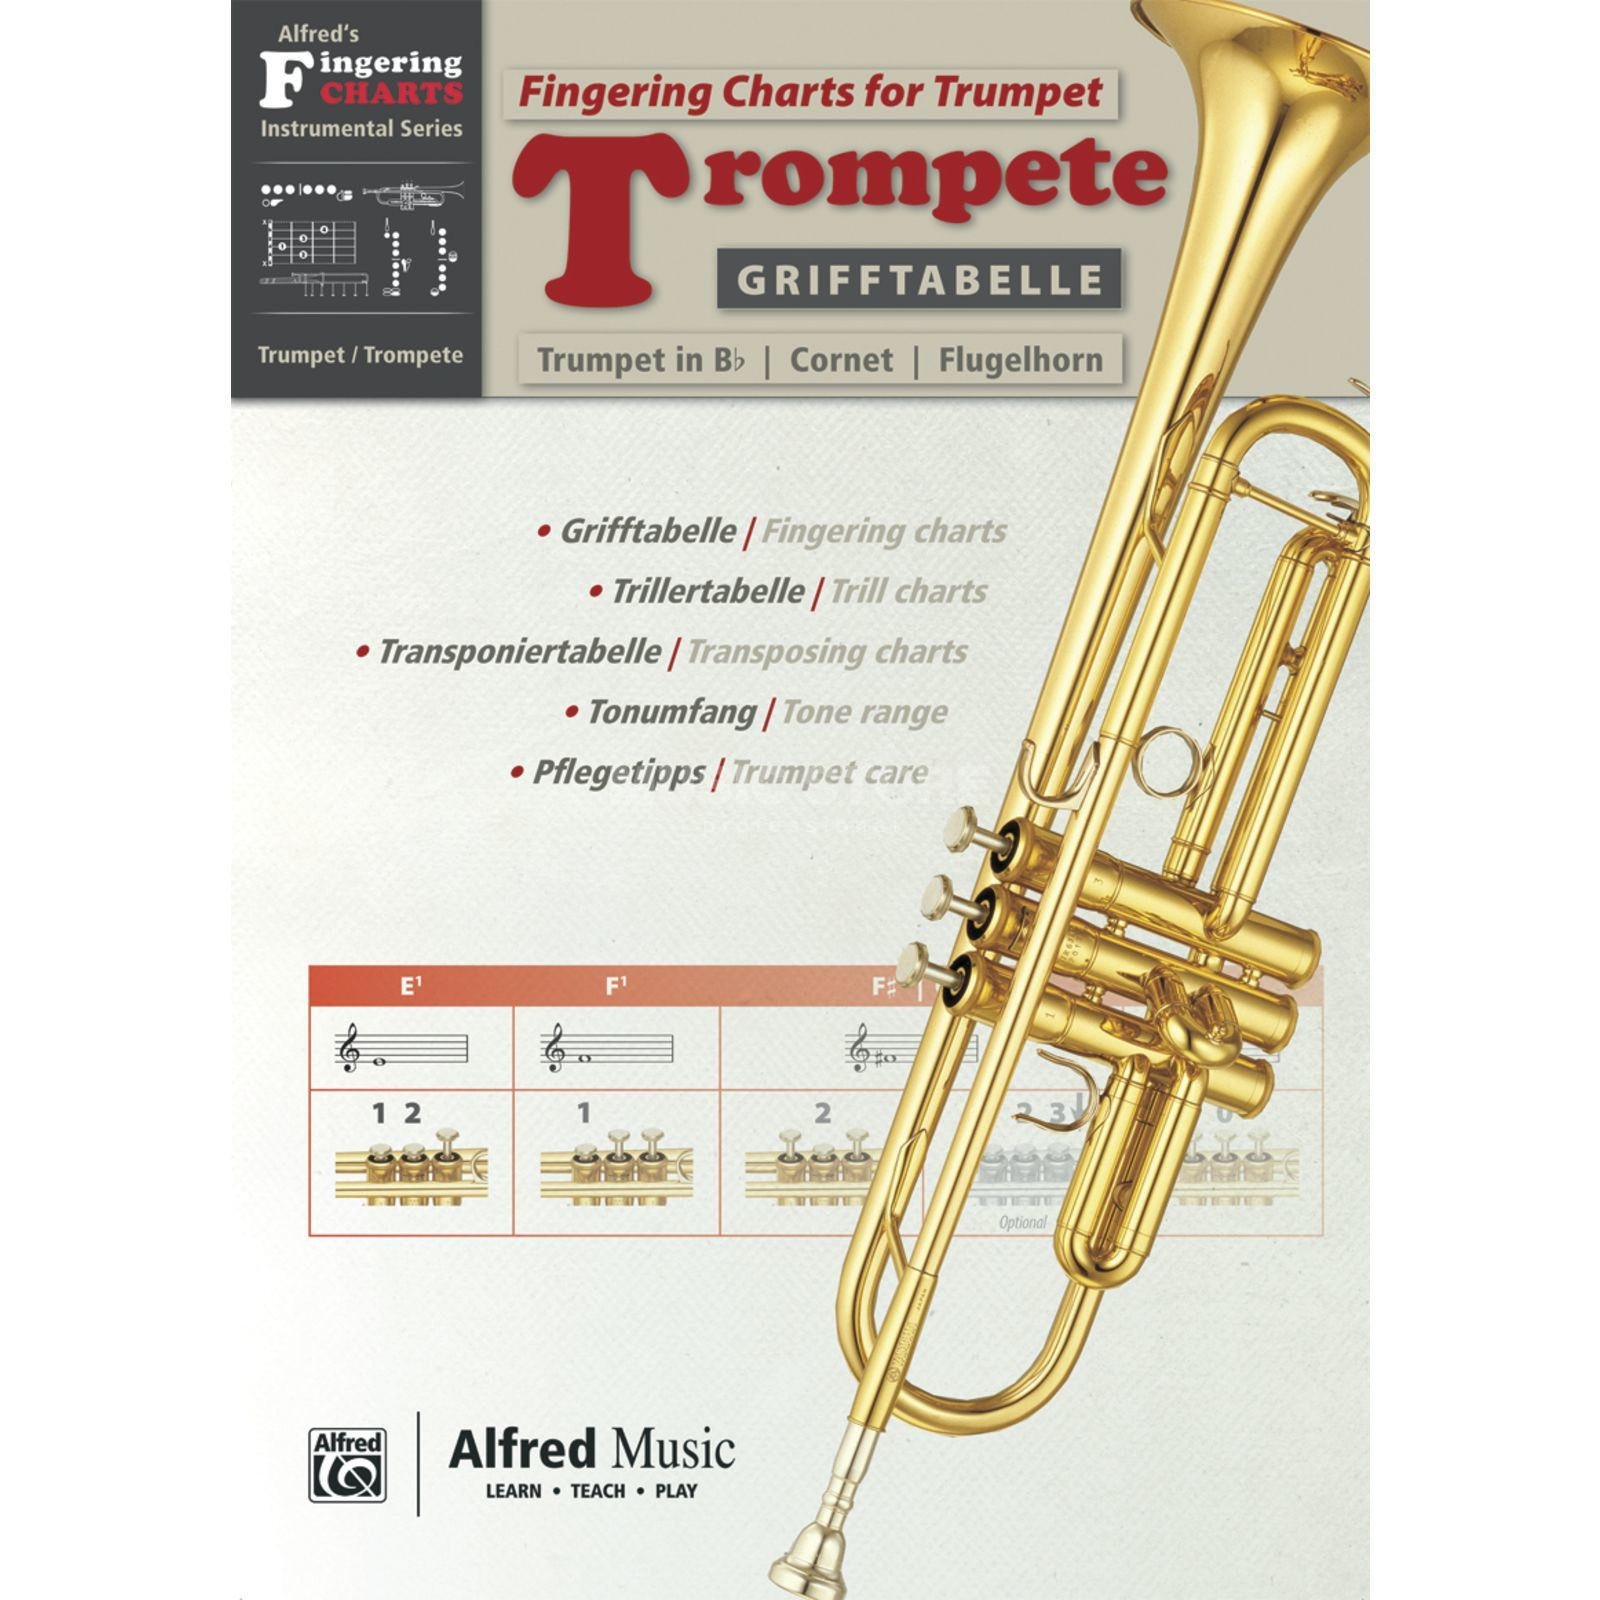 Alfred Music Grifftabelle Trompete  Produktbillede